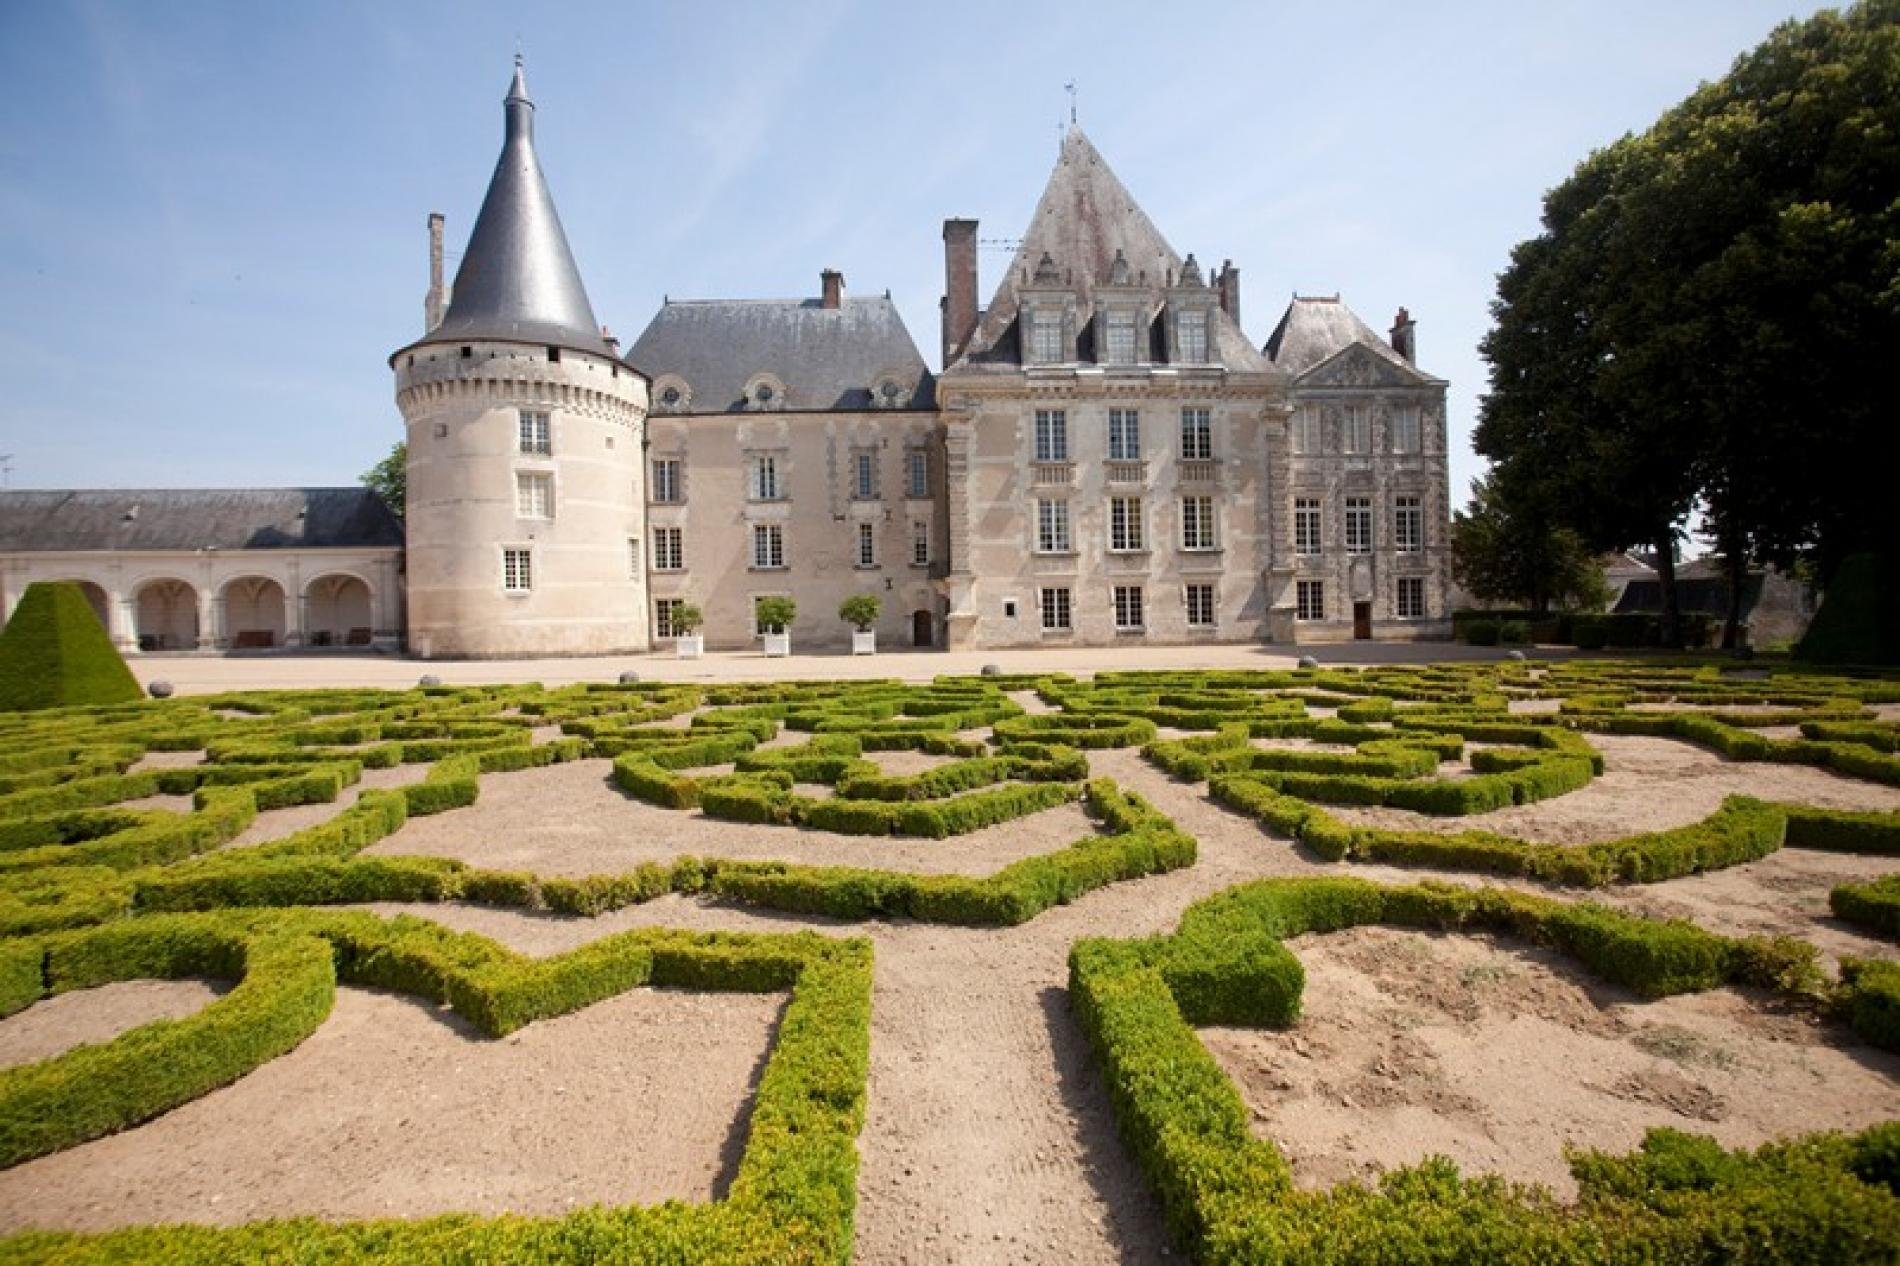 The castle of Azay-le-Ferron